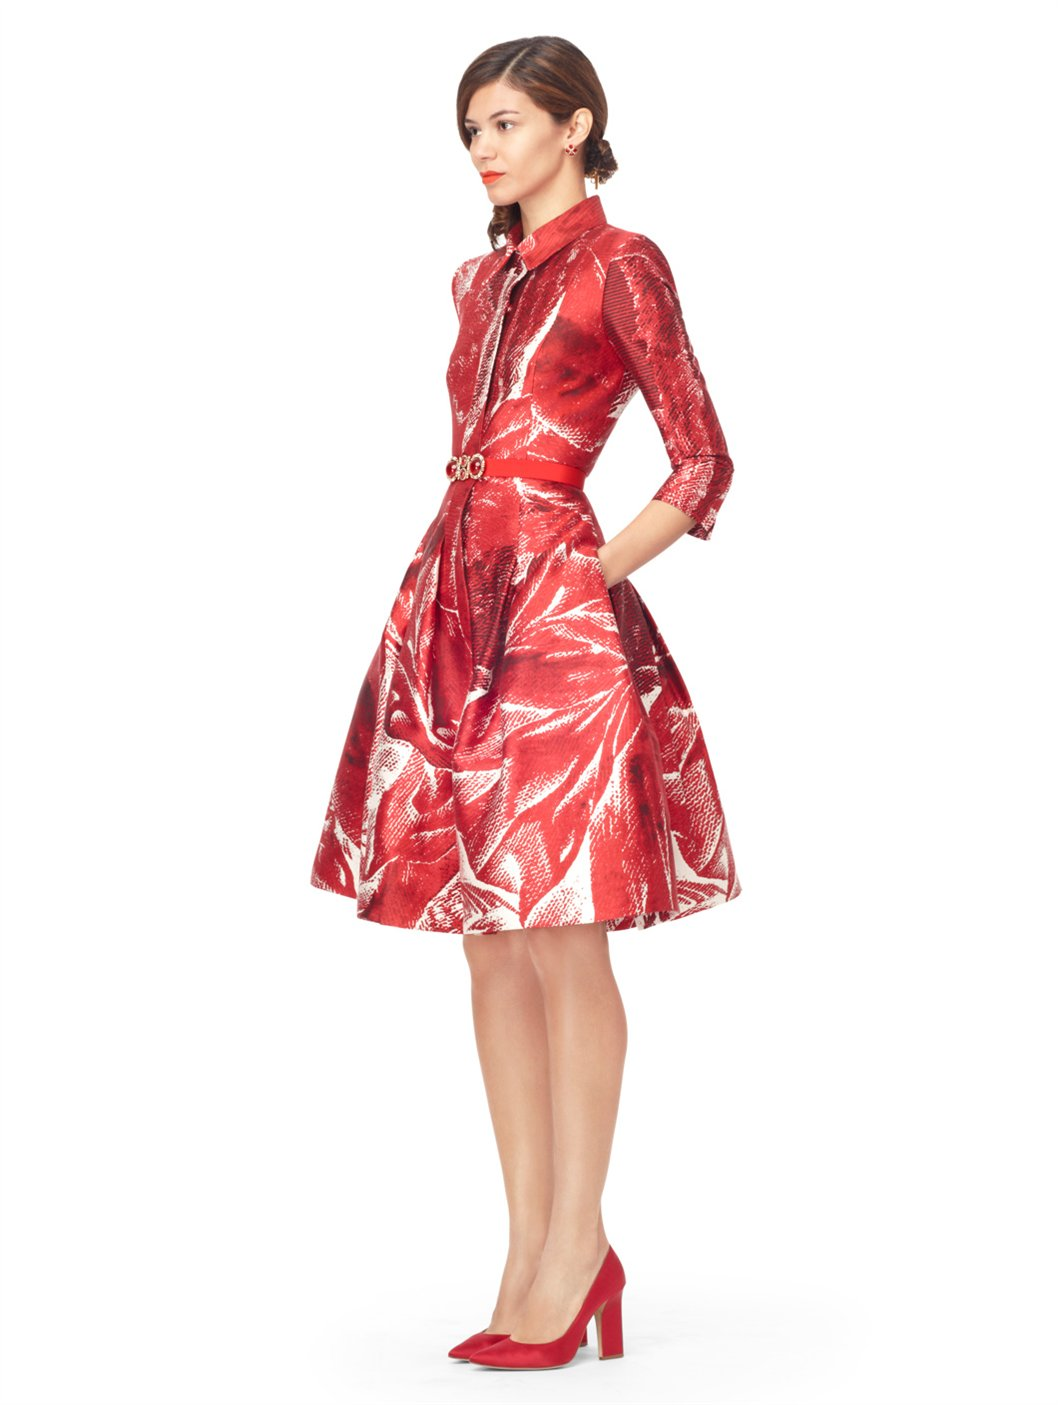 lyst oscar de la renta 34 sleeve shirt dress with full skirt in red. Black Bedroom Furniture Sets. Home Design Ideas